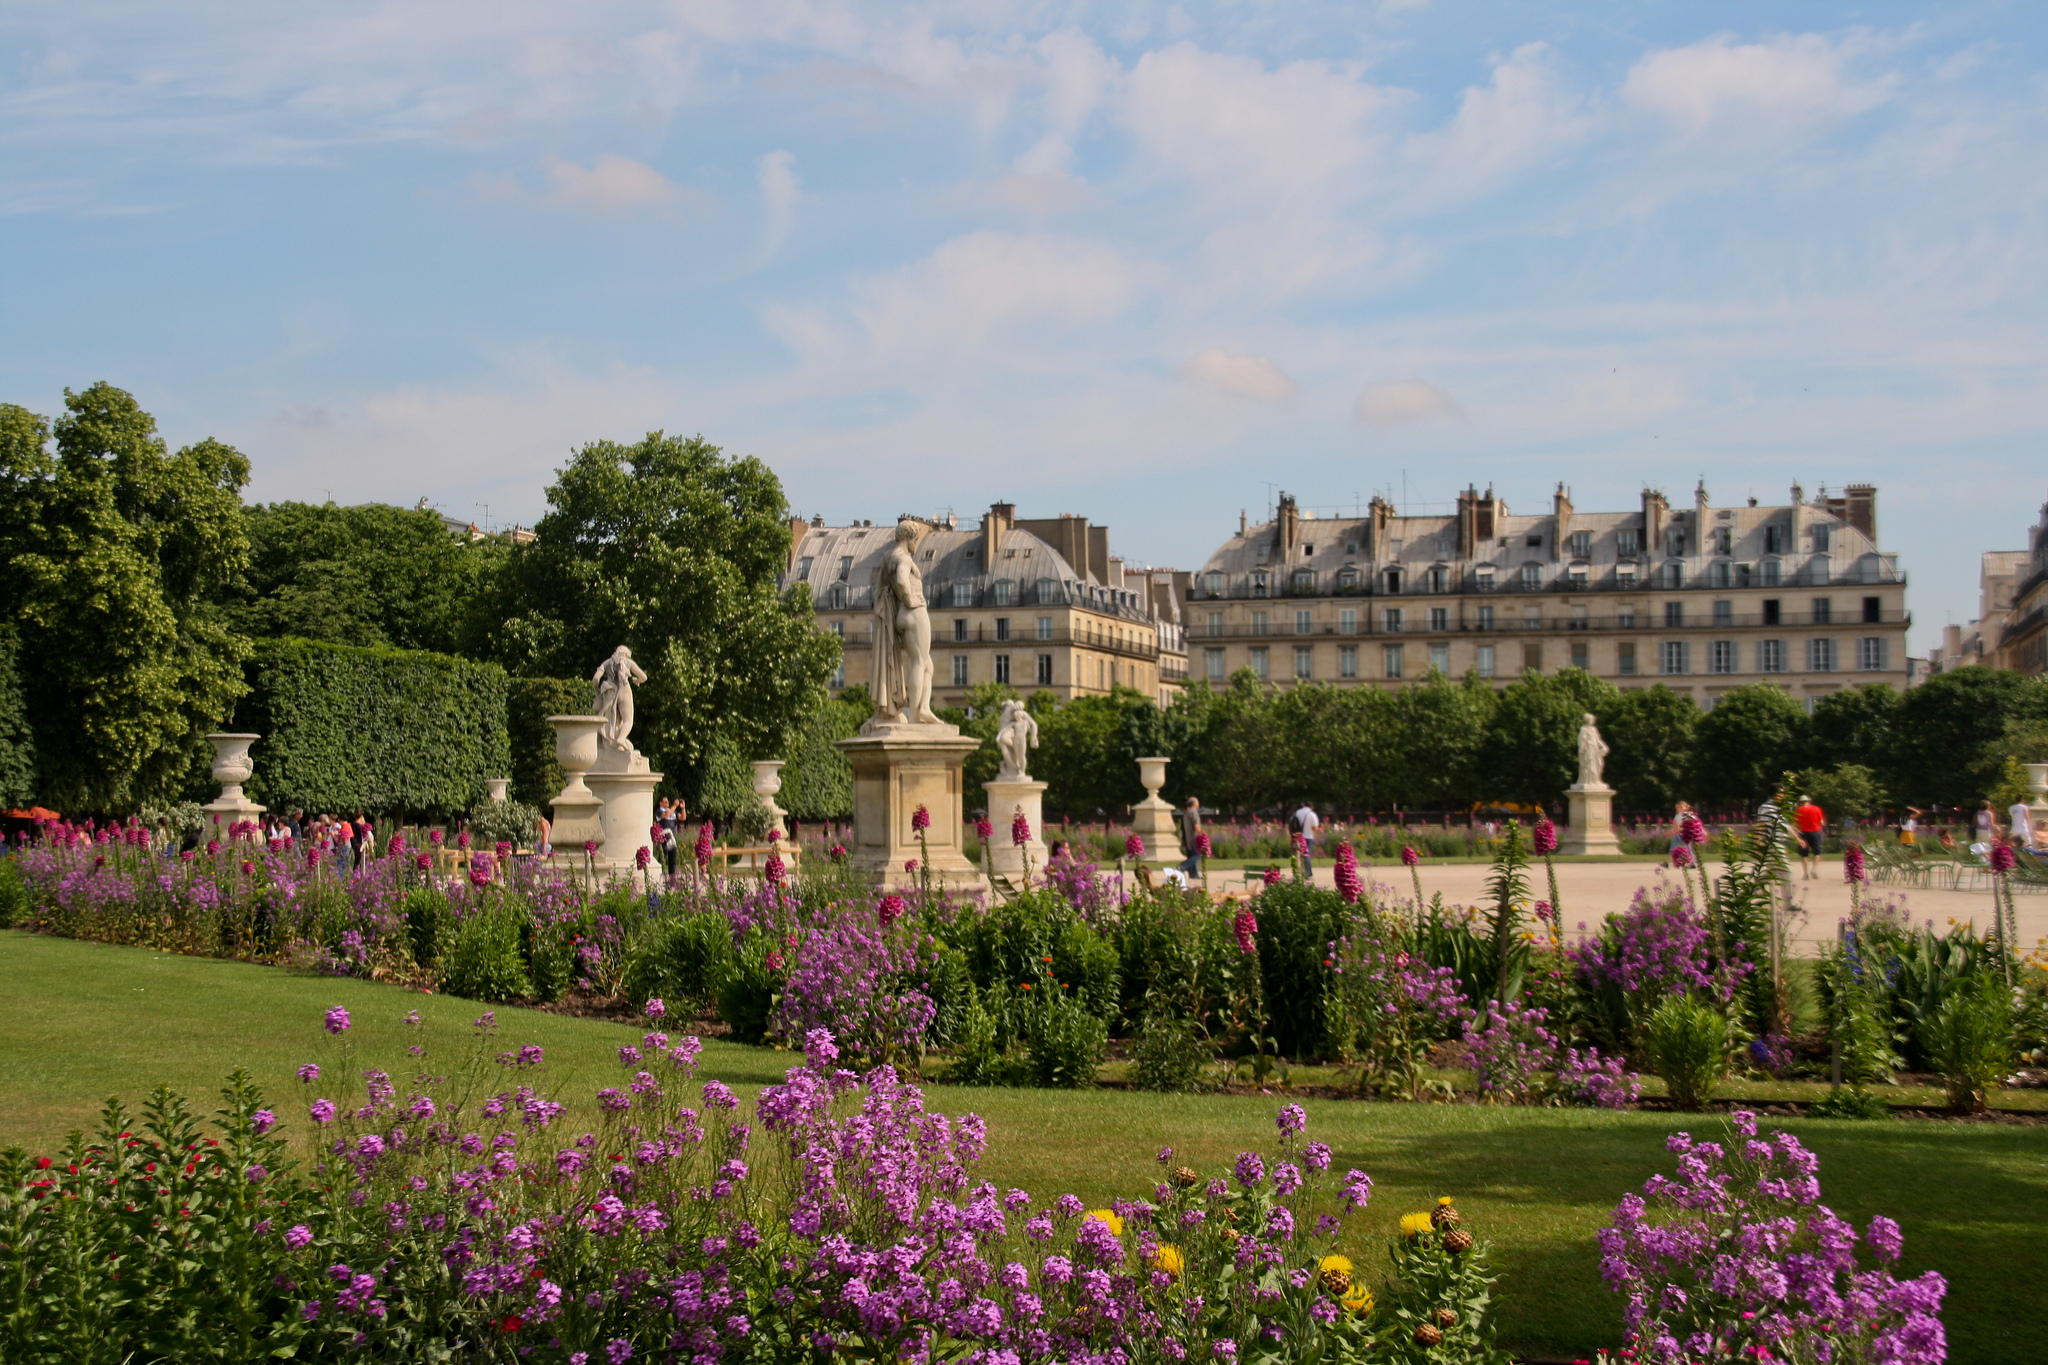 Tuileries Garden - Urban Park In Paris